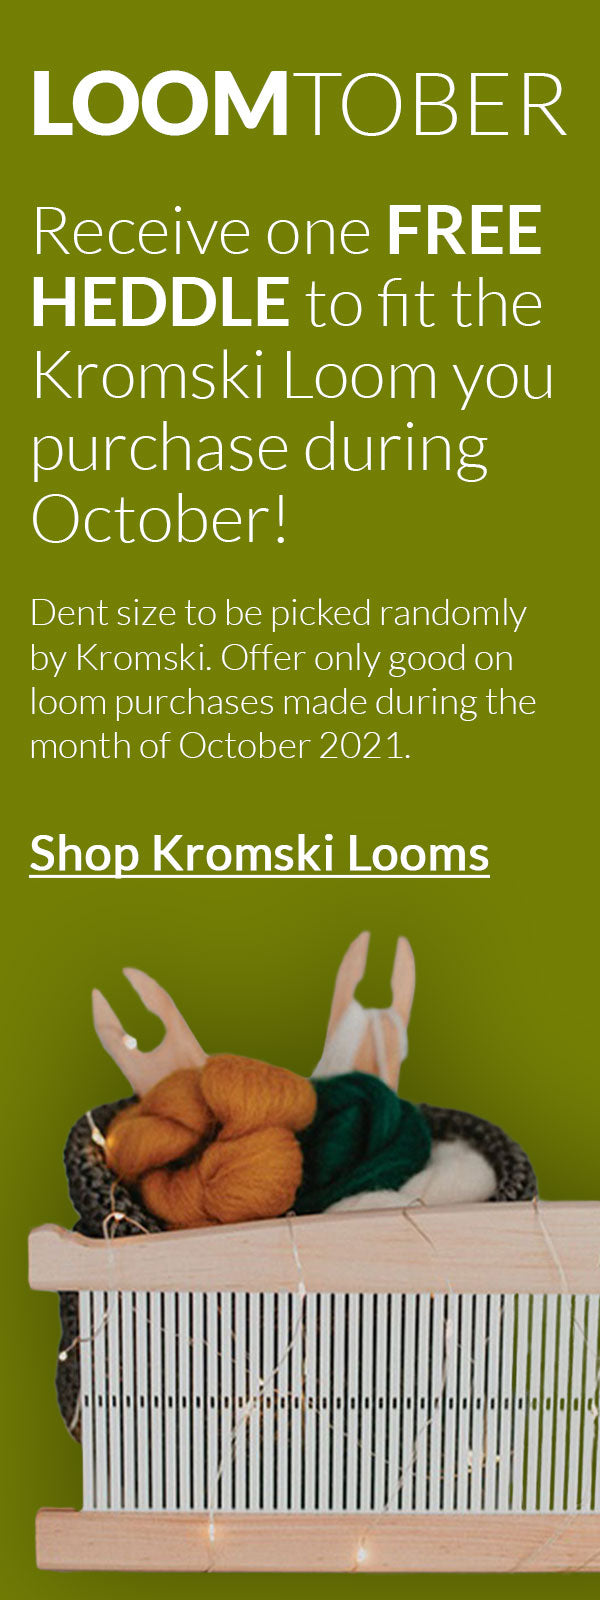 Receive one FREE HEDDLE to fit the Kromski Loom you purchase during October! Dent size to be picked randomly by Kromski. Offer only good on loom purchases made during the month of October 2021. Click to shop Kromski Looms.